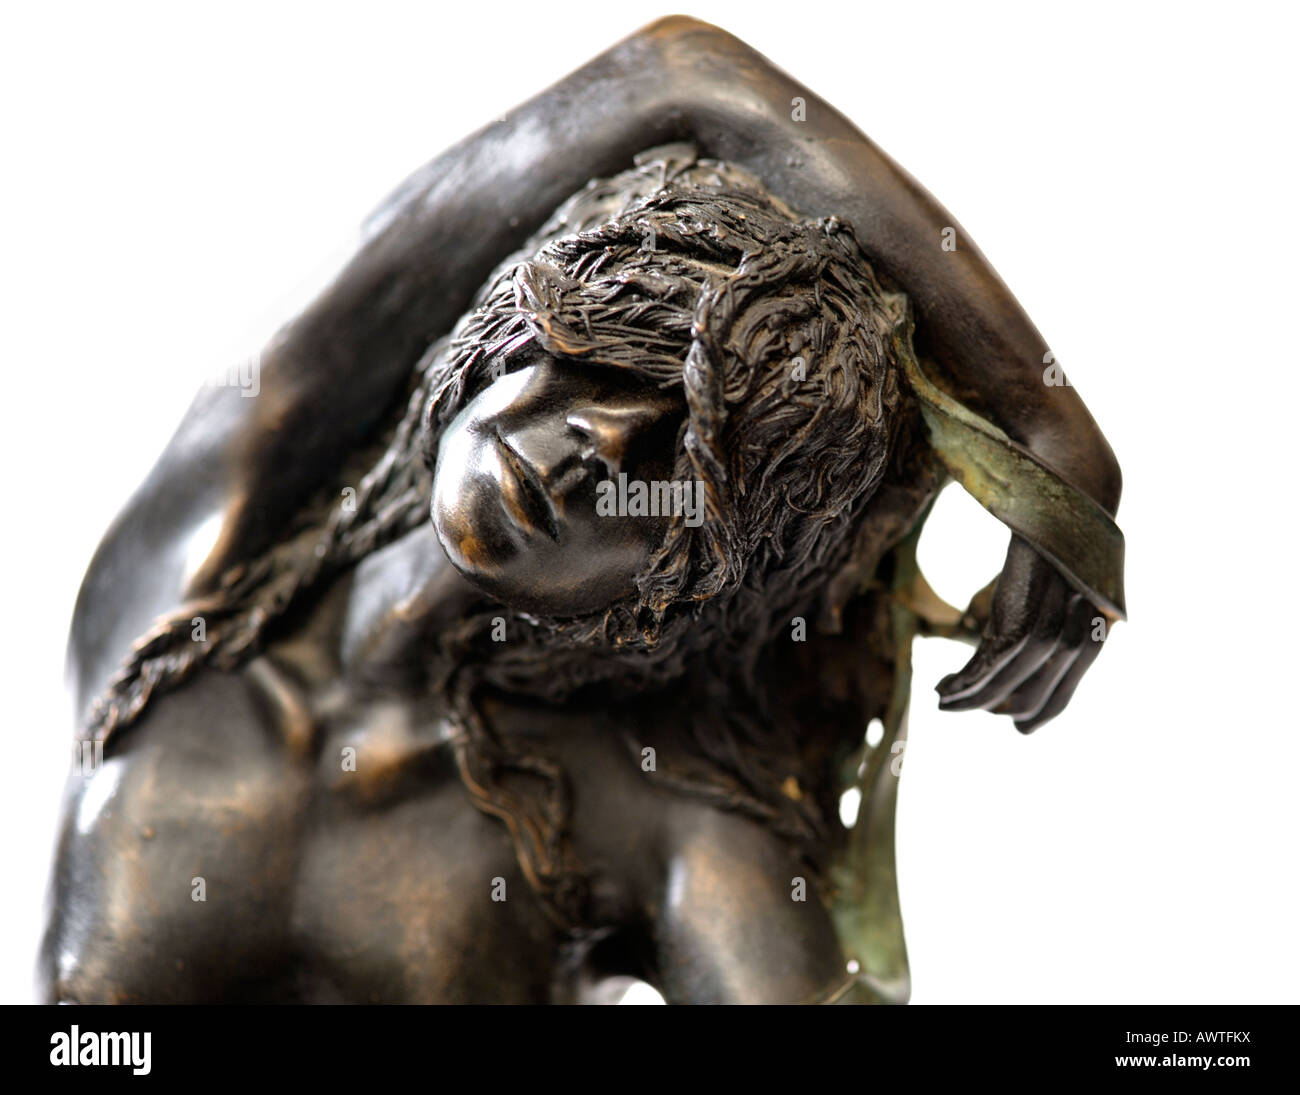 Bronze Resin Statuette Sculpture Ribbons by Sue Riley sculptor Limited Edition of 25 1990s Detail EDITORIAL USE - Stock Image